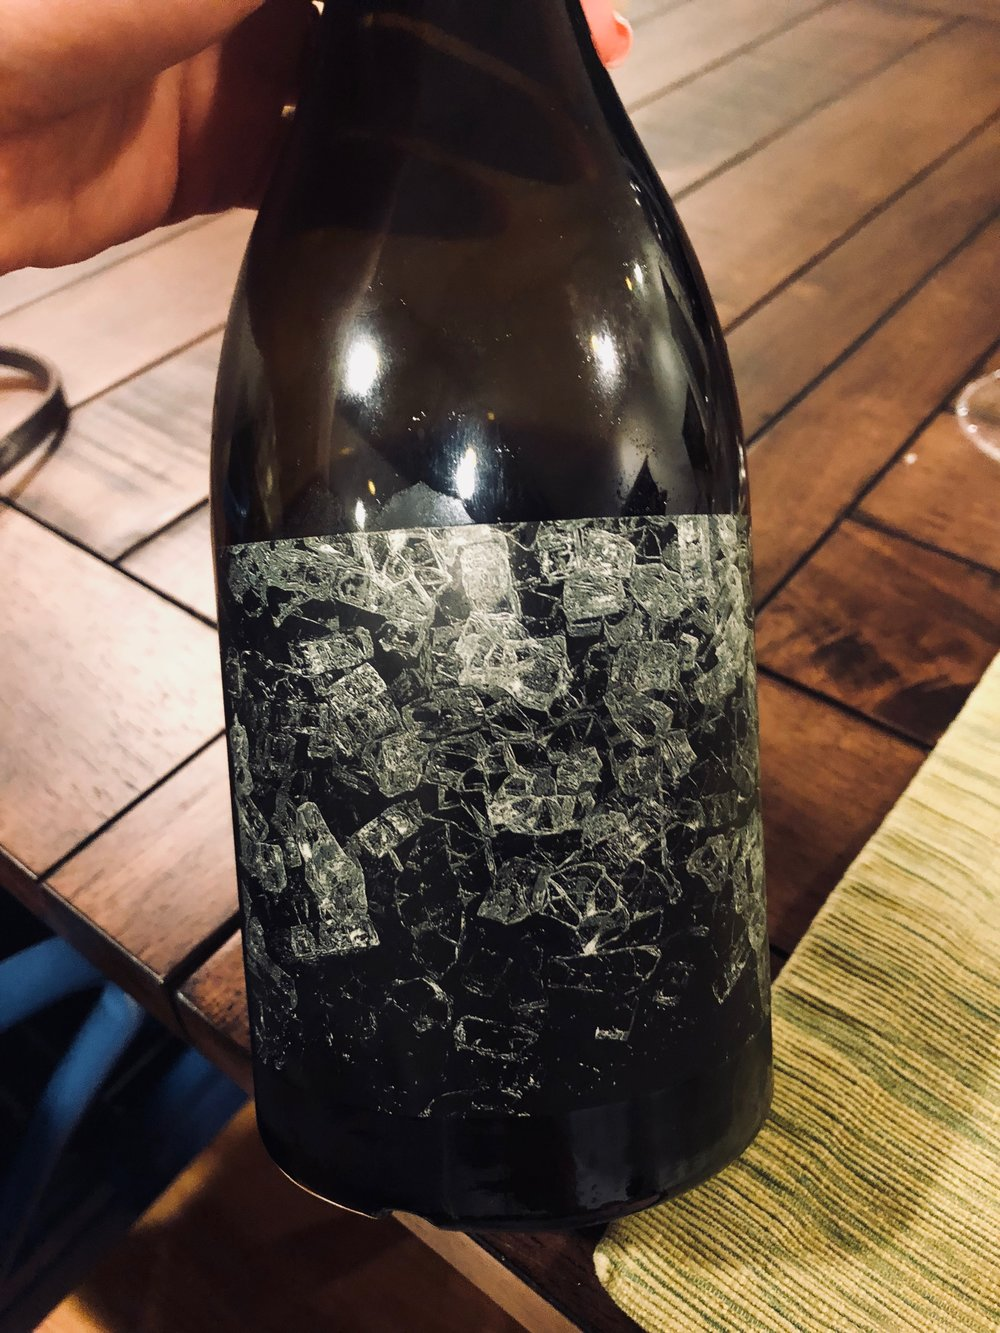 Shatter wine is a collaboration between Trinchero Family Estates and wine making legends Dave Phinney of Orin Swift Wines and Joel Gott of Joel Gott Wines.